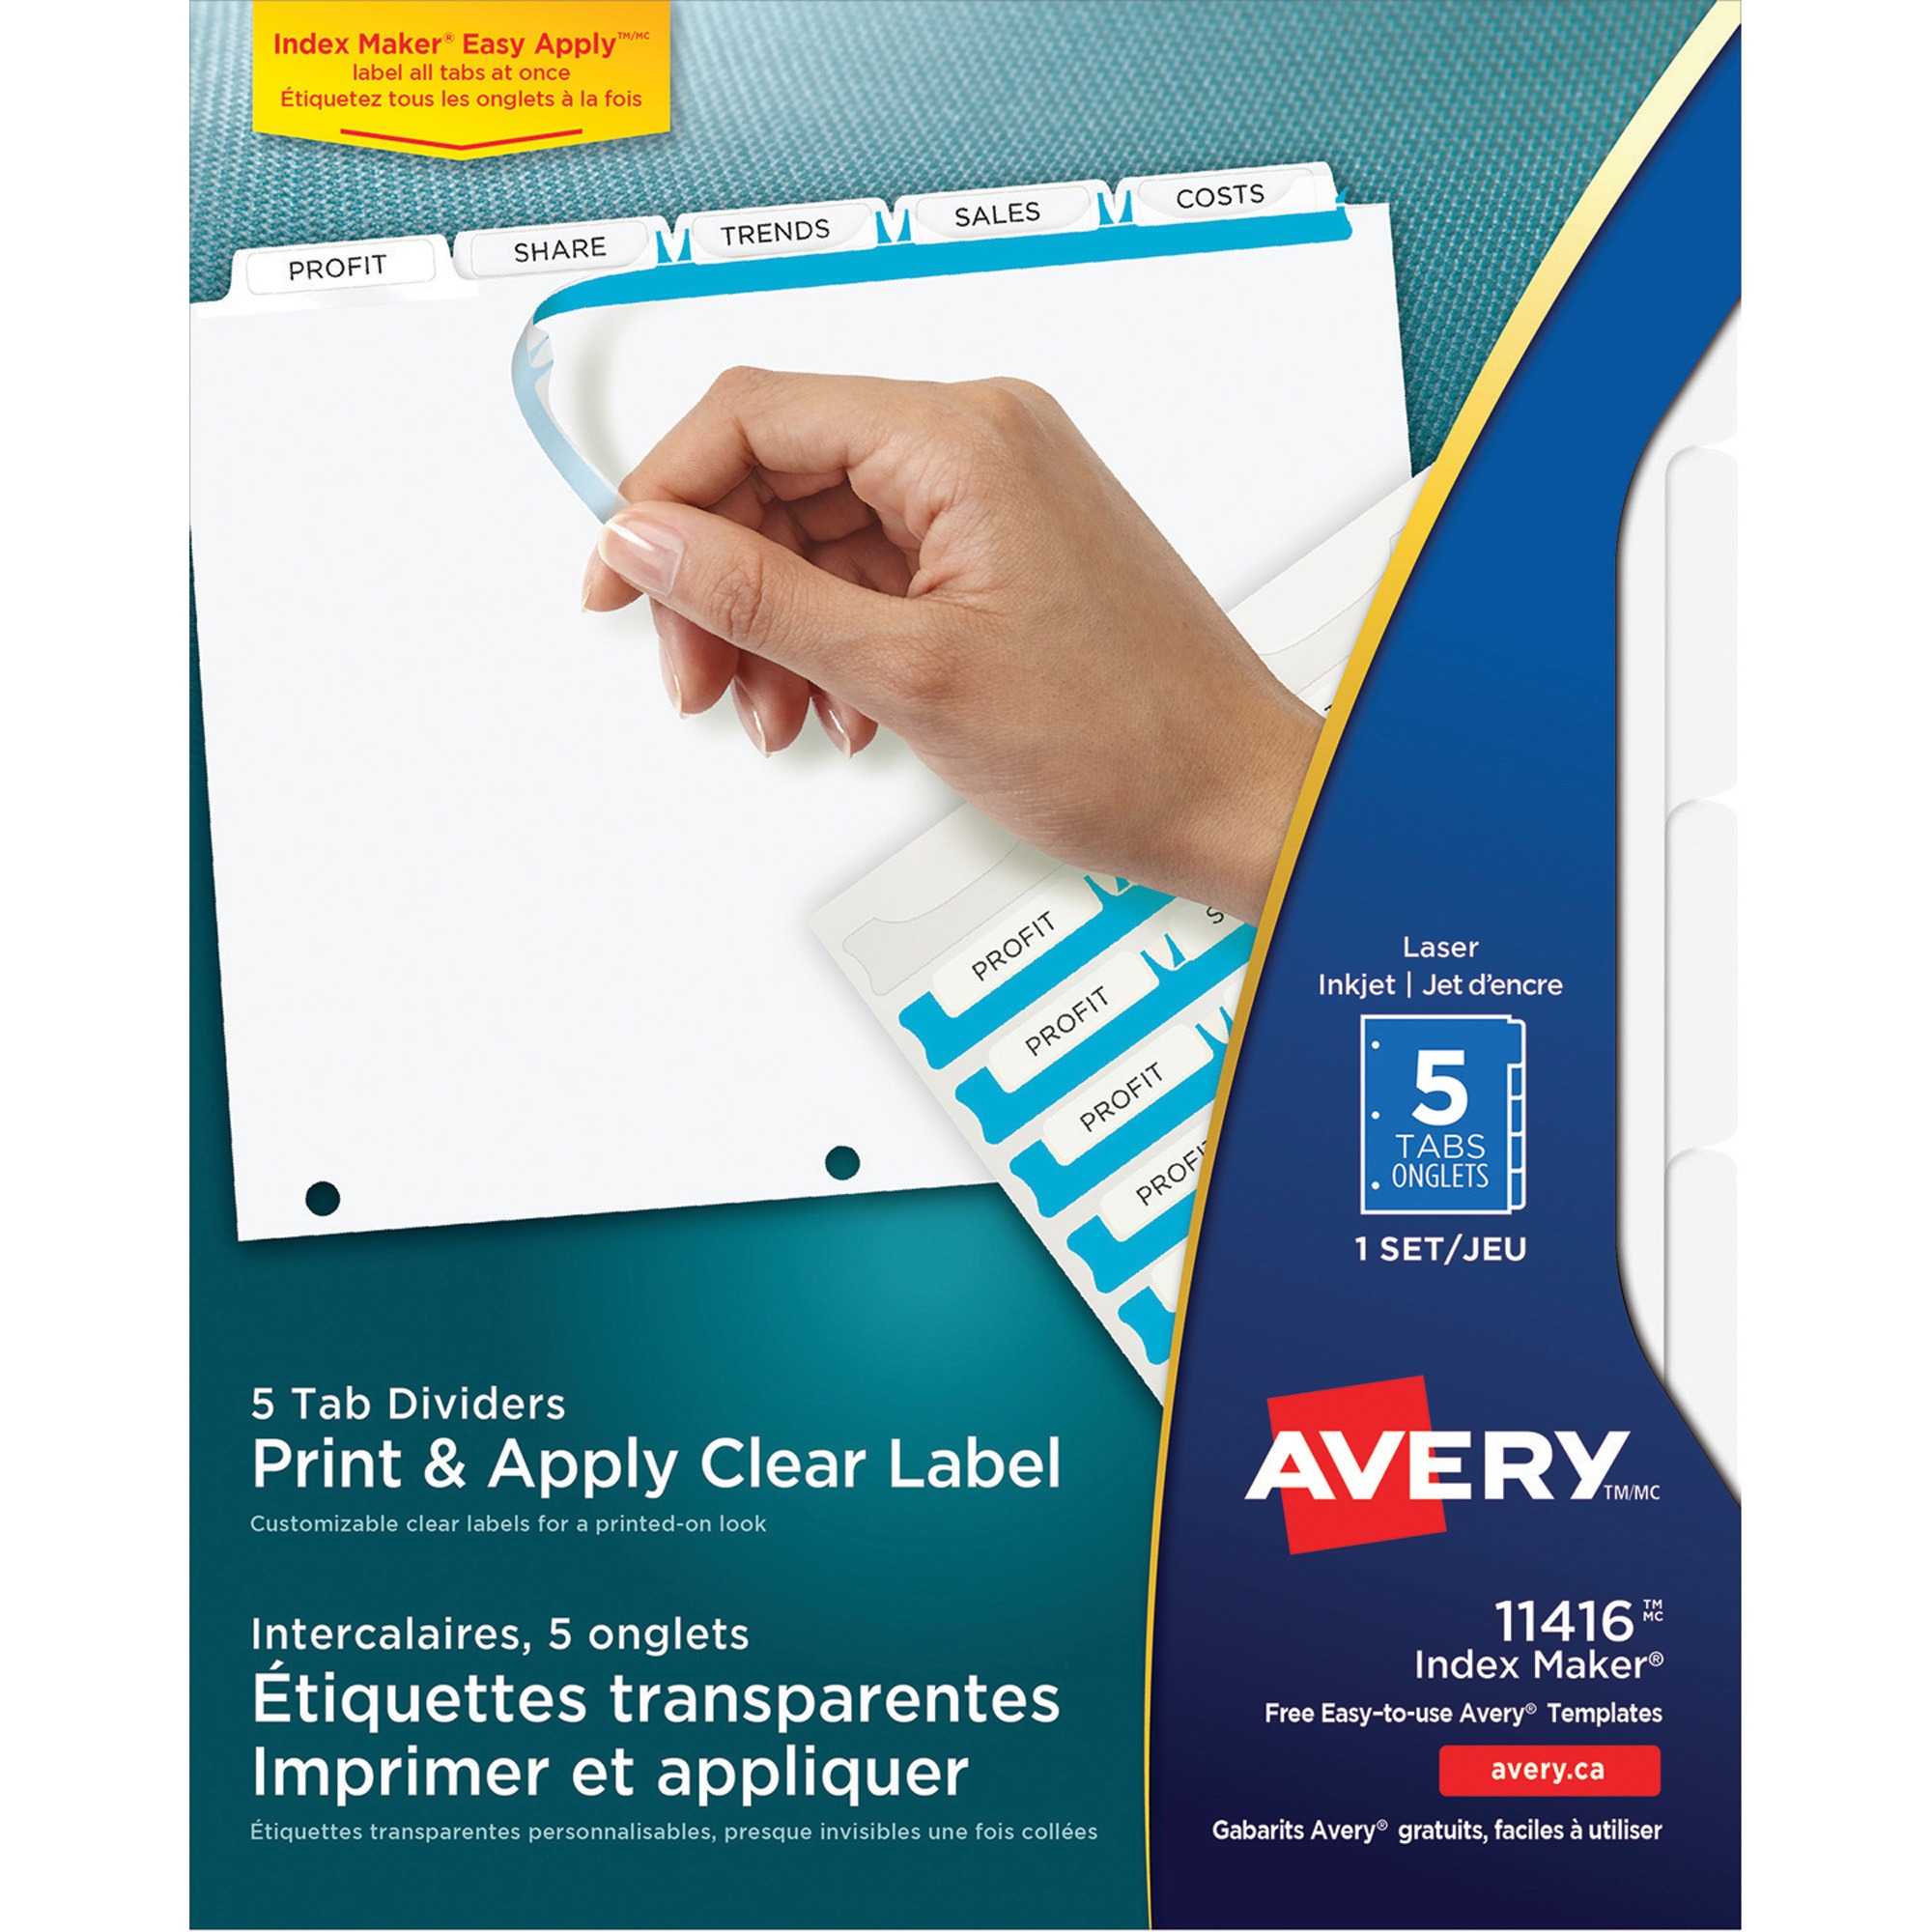 Avery Index Maker Print Apply Clear Label Dividers Wwhite Tabs 5